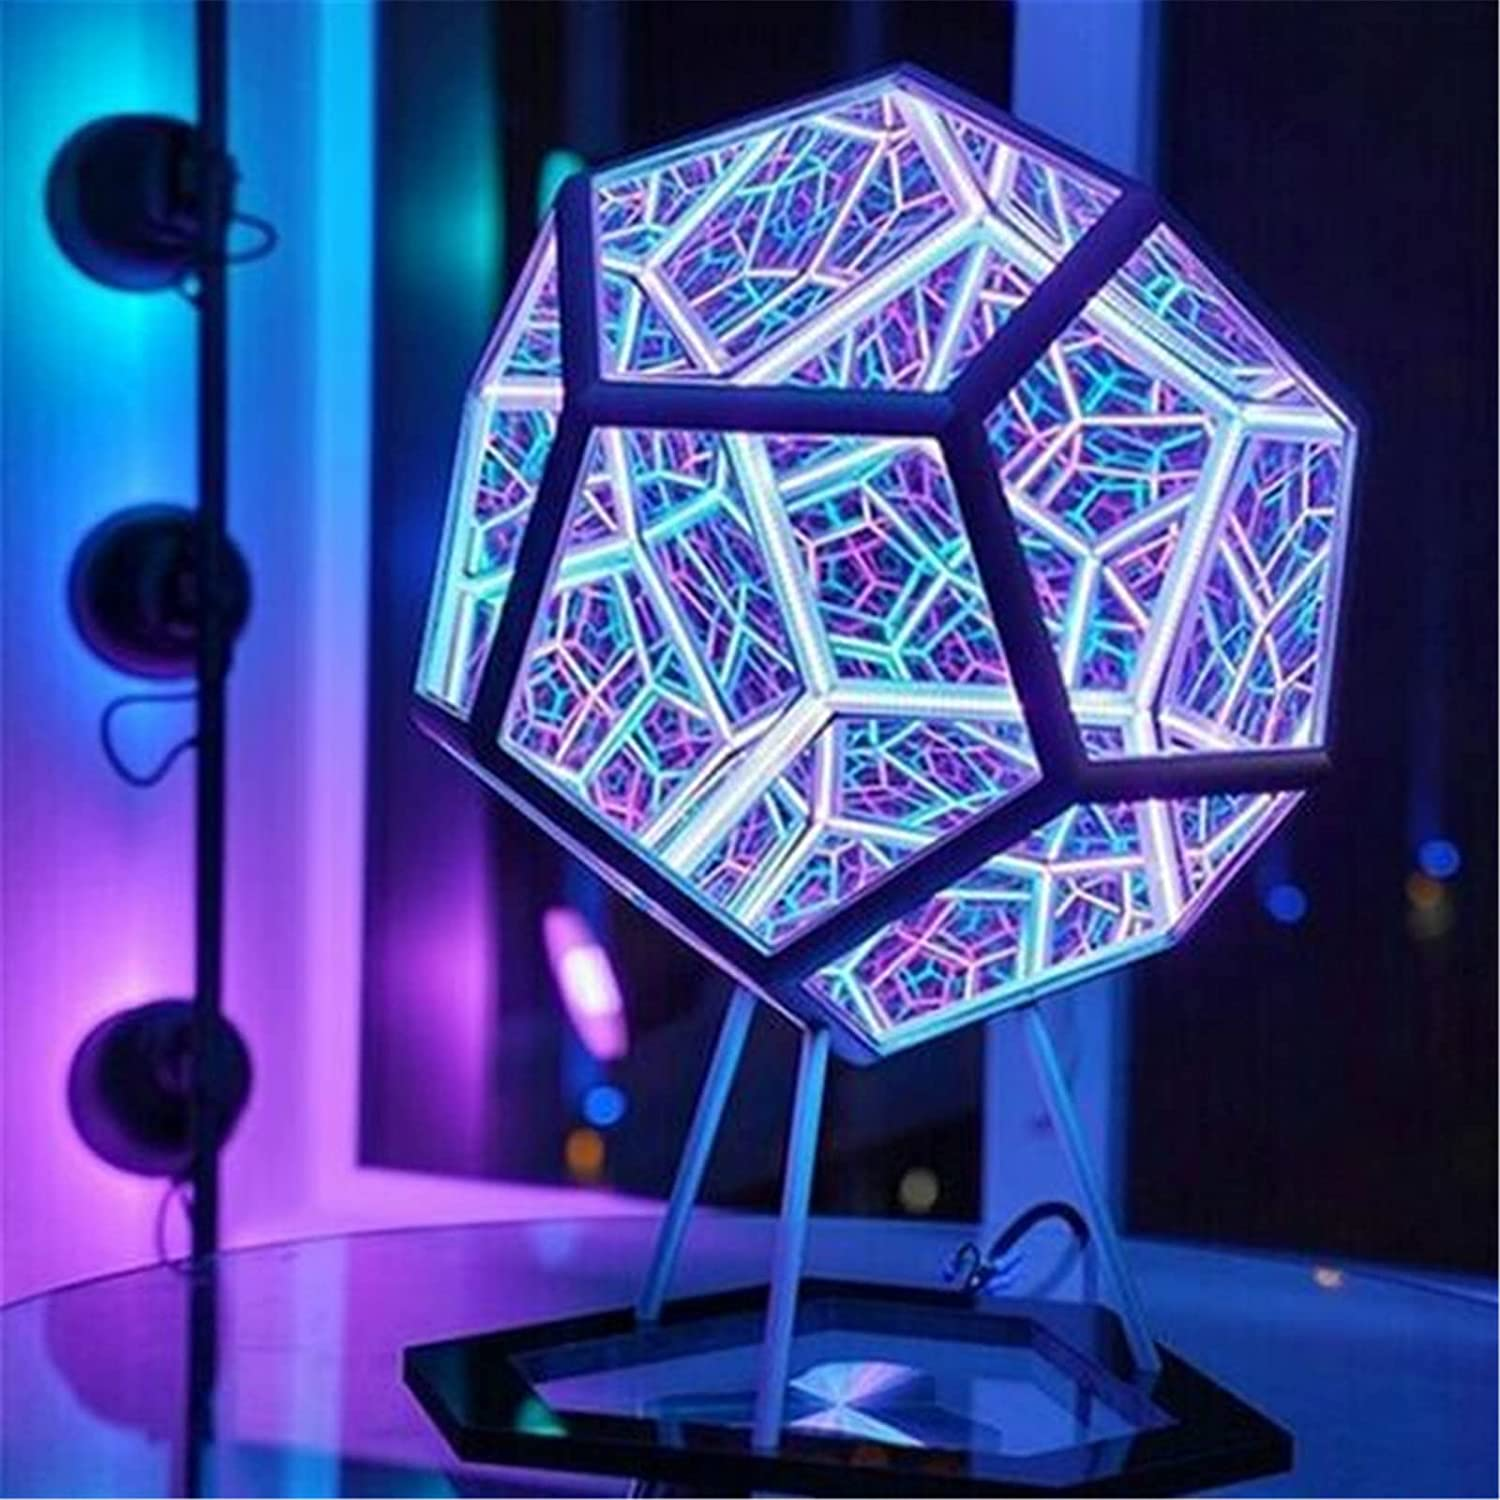 Infinite Dodecahedron Color famous El Paso Mall Art Decoration Furniture Table Light